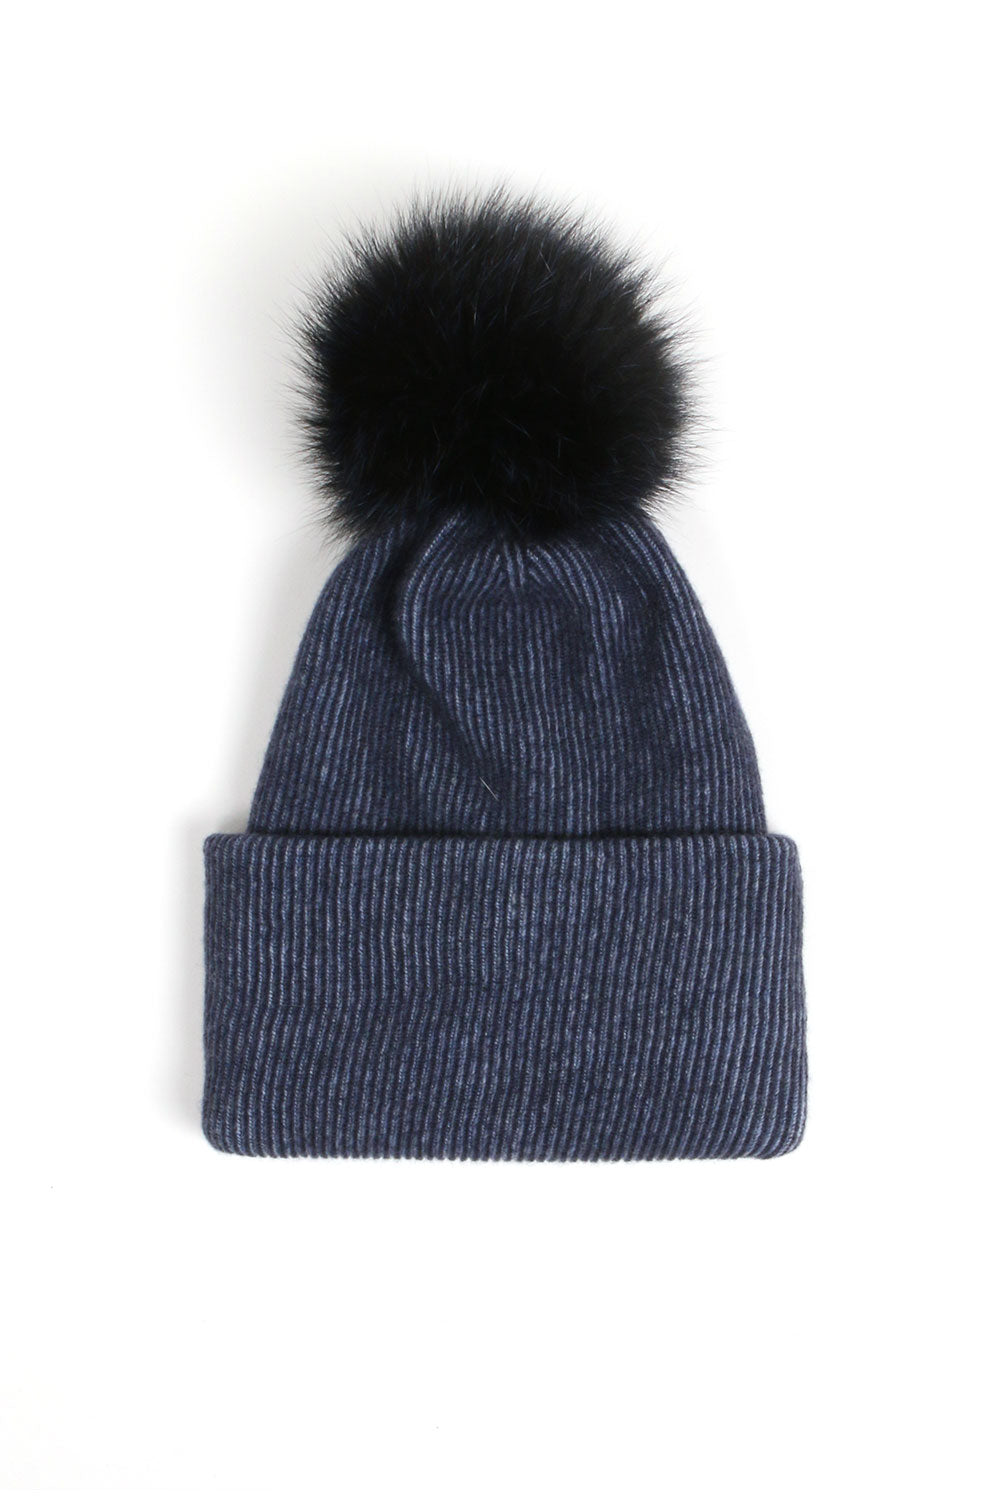 Ribbed Navy Hat